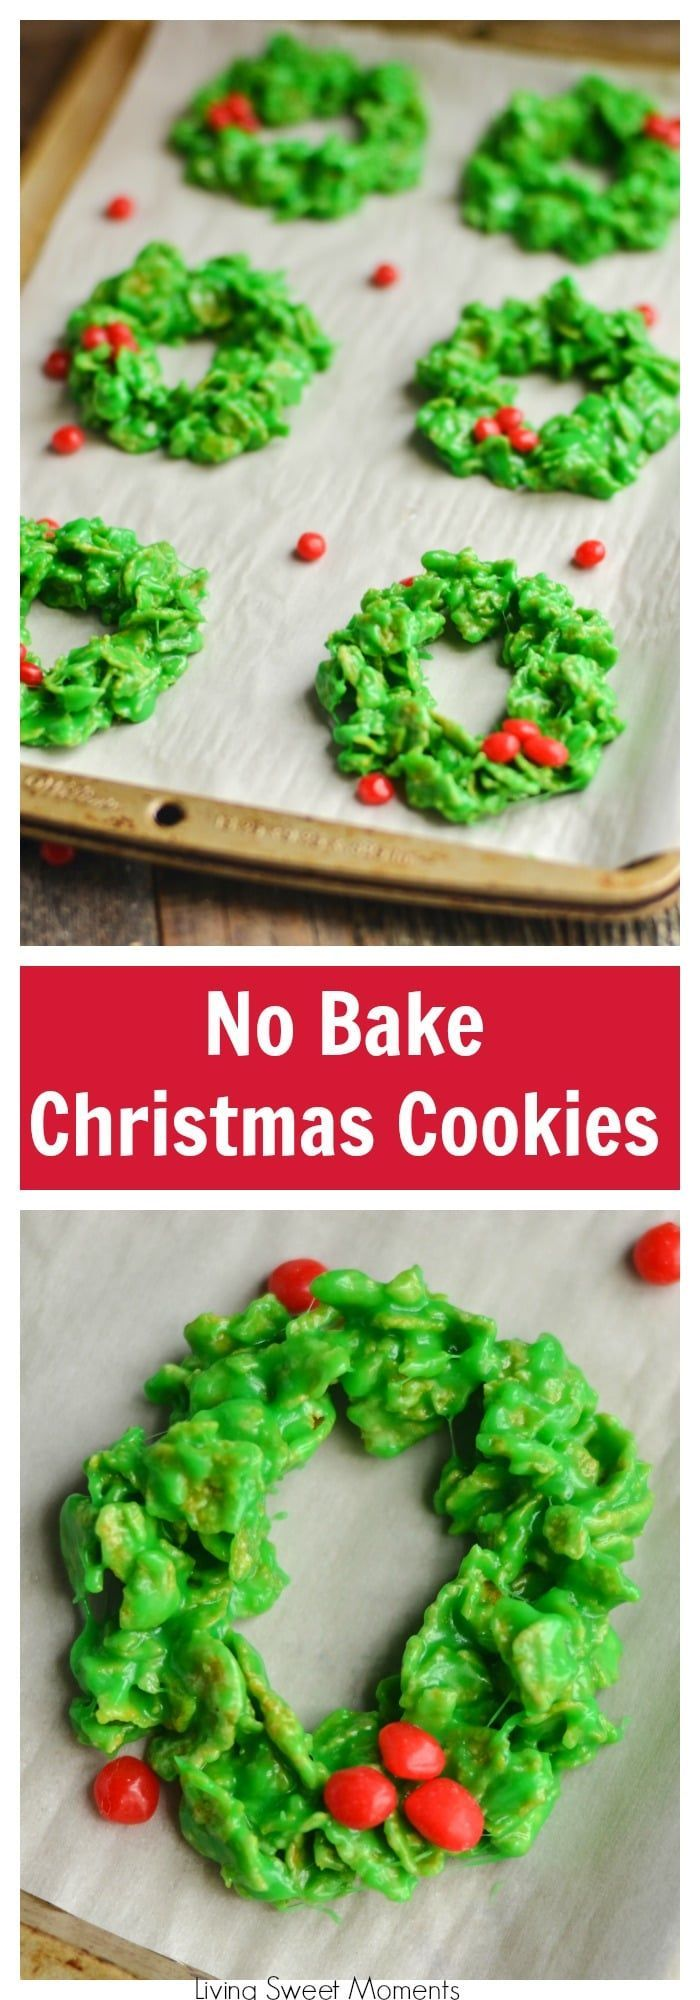 These easy and delicious Christmas Wreath Cookies require no baking & few ingredients. Perfect to make with kids. Give them out as gifts or for dessert. More Christmas cookie recipes at livingsweetmoments.com  via @Livingsmoments  #christmascookies #nobakecookies